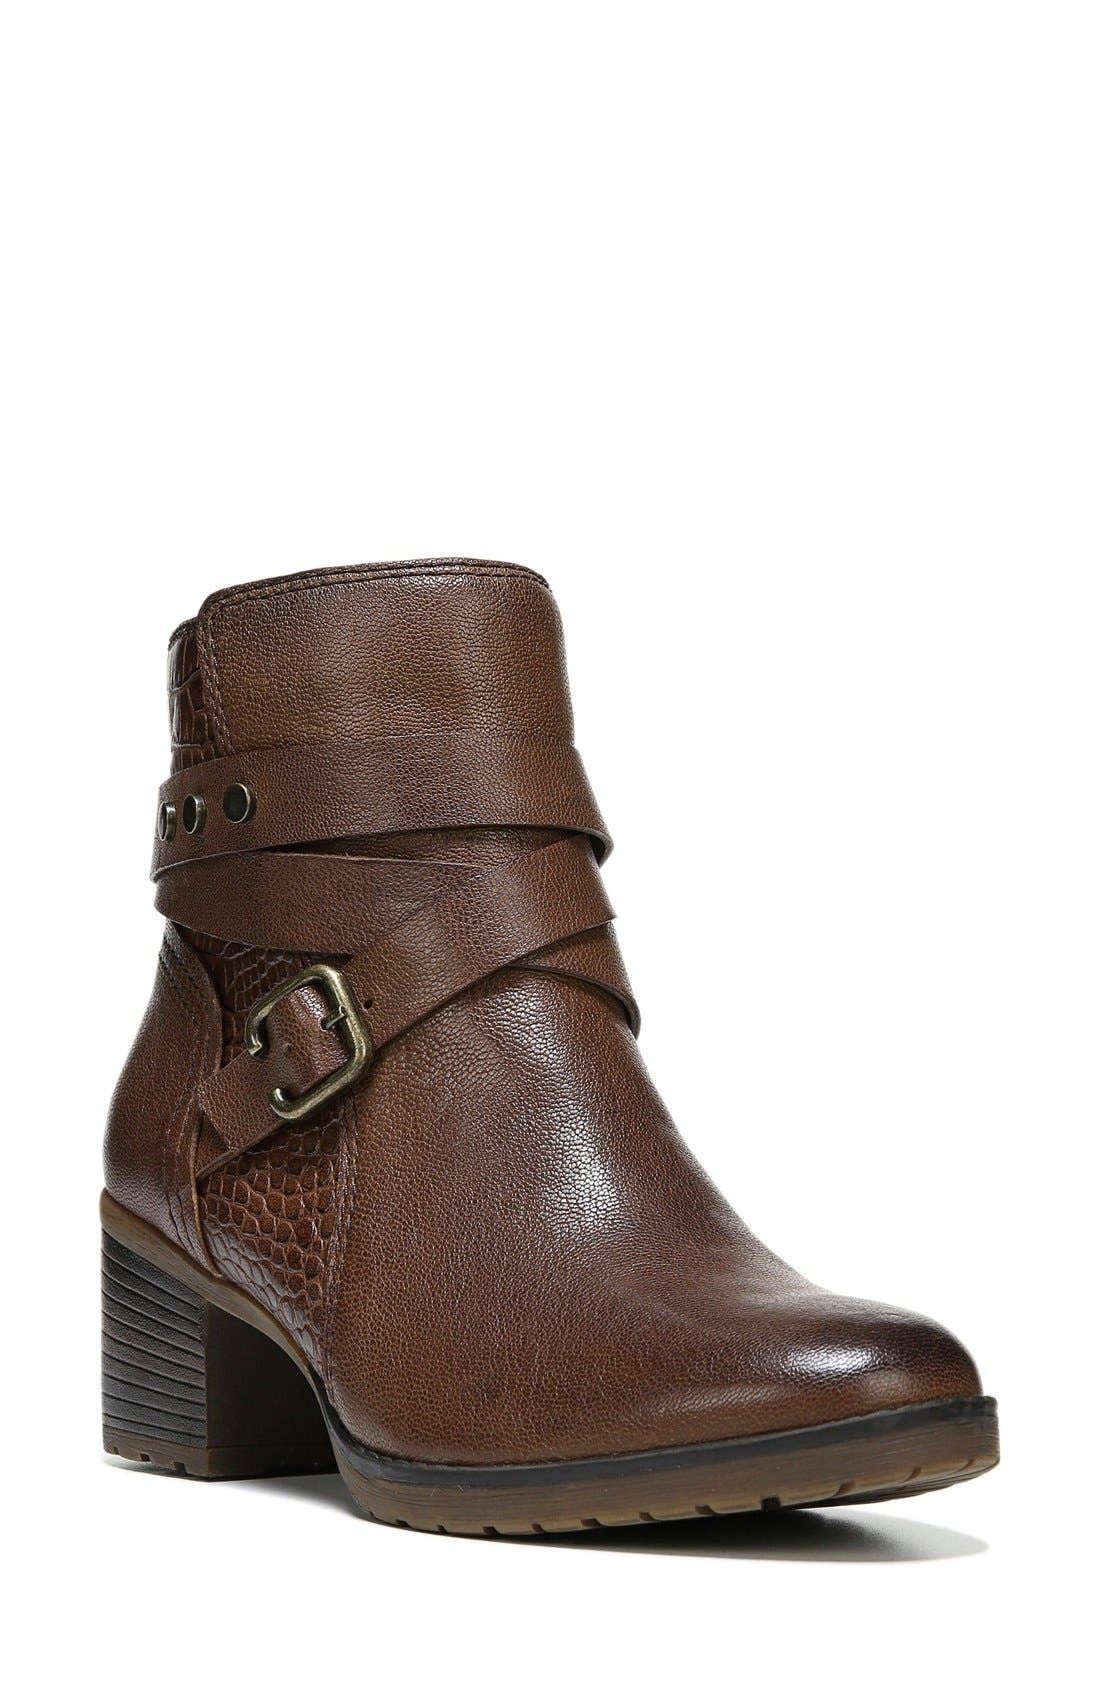 'Ringer' Boot,                             Main thumbnail 1, color,                             Tan Leather